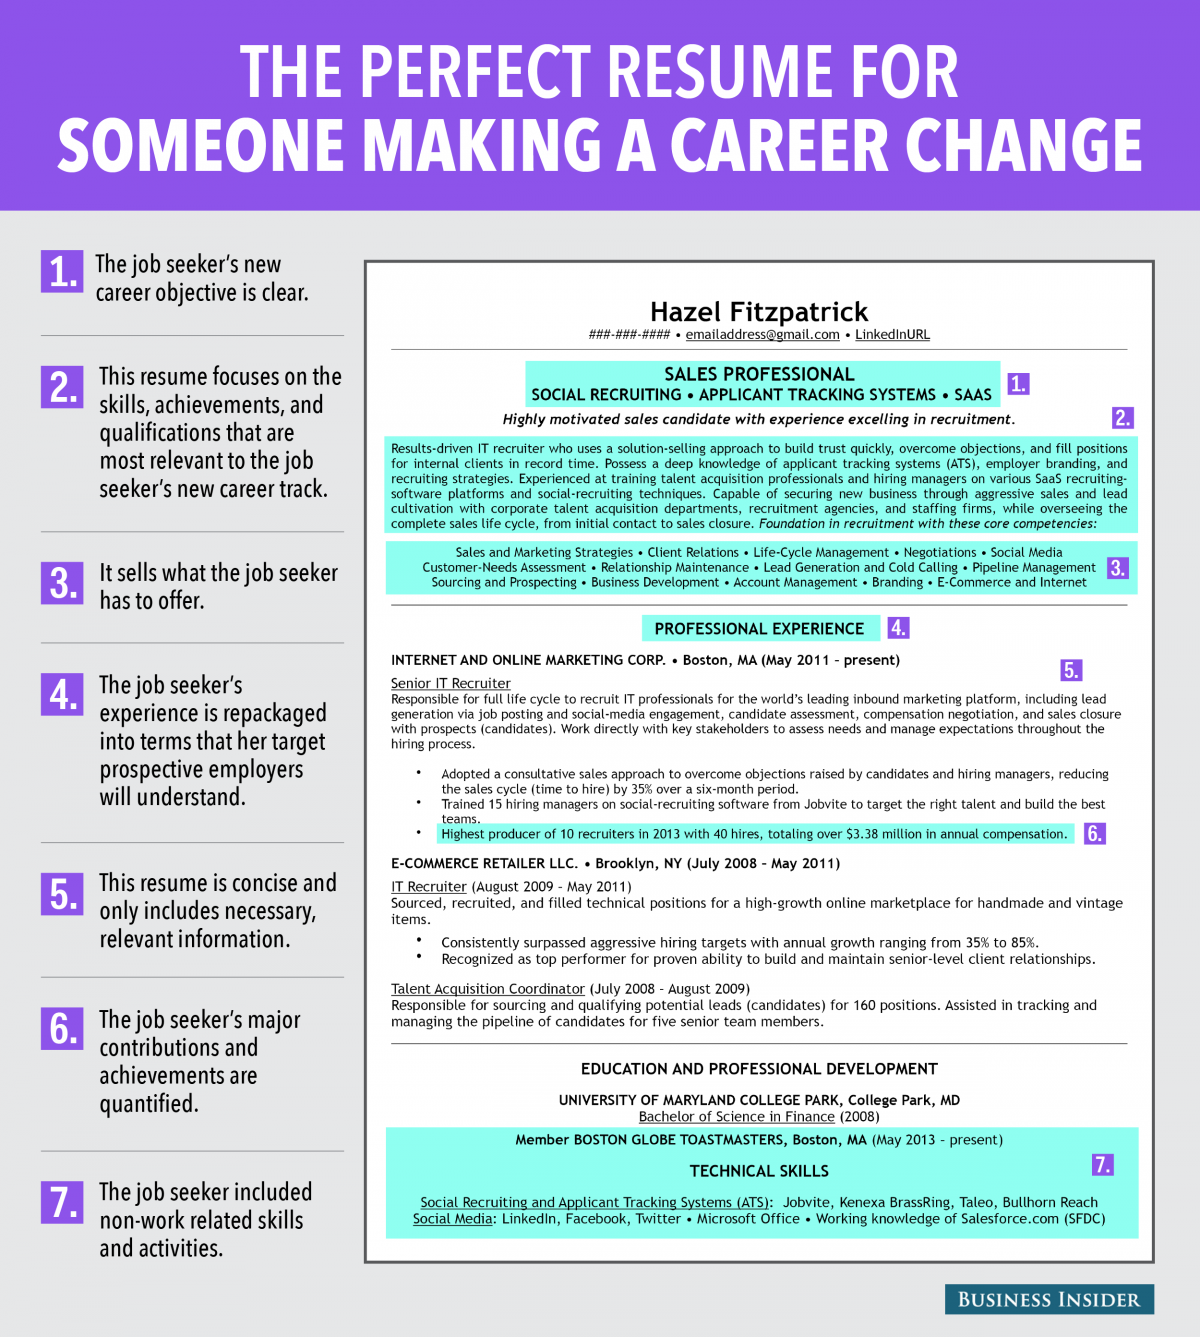 Build A Resume Online Entrancing 7 Reasons This Is An Excellent Resume For Someone Making A Career